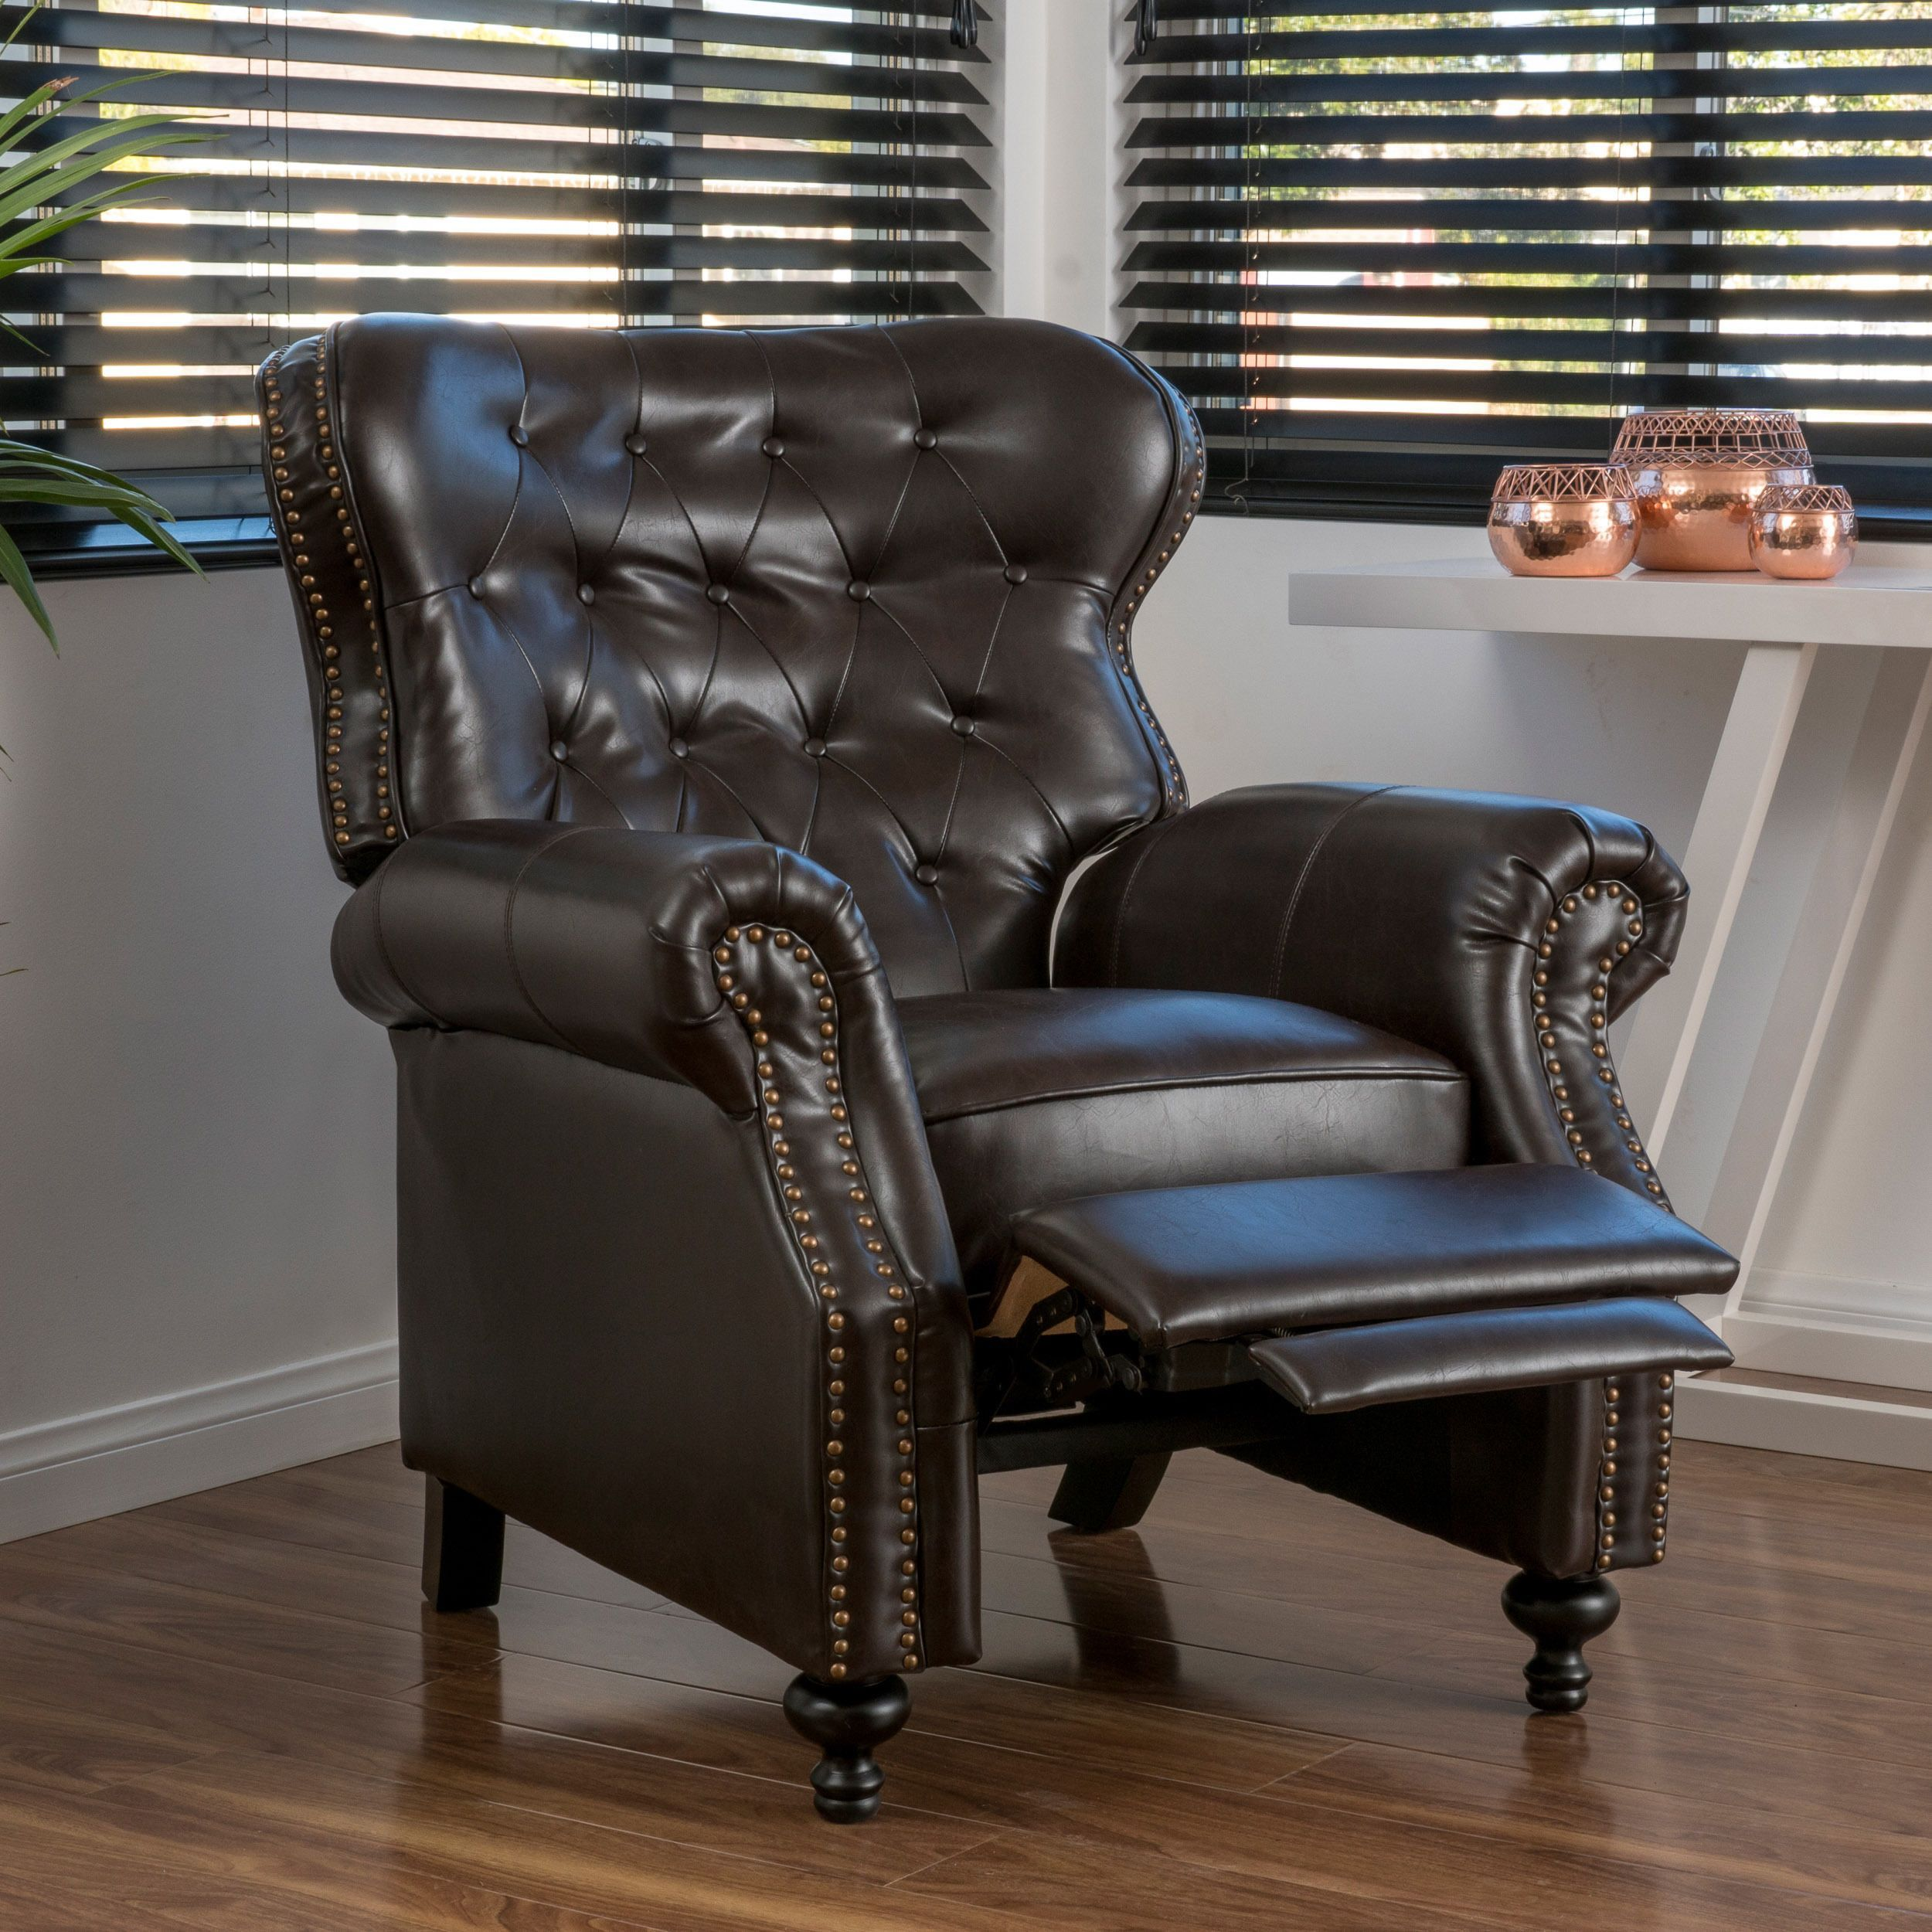 Walder Bonded Leather Recliner Club Chair By Christopher Knight Home  (Brown), Size Standard